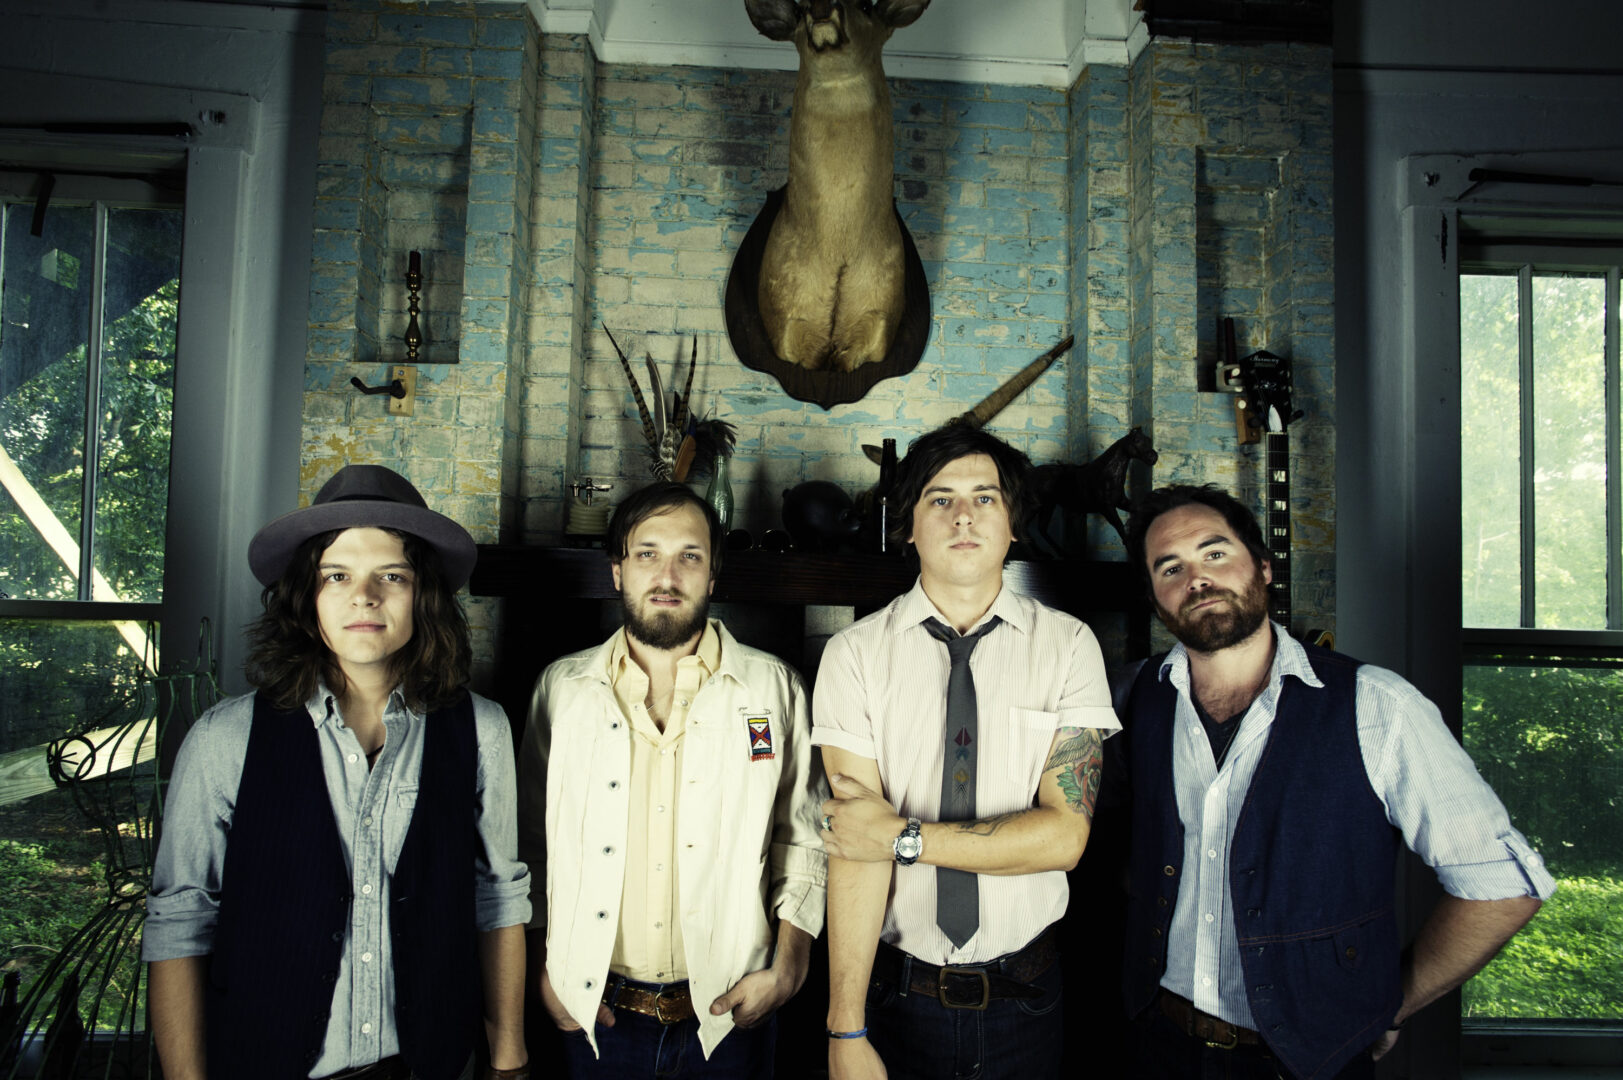 The Wild Feathers Announces Tour with Ryan Bingham